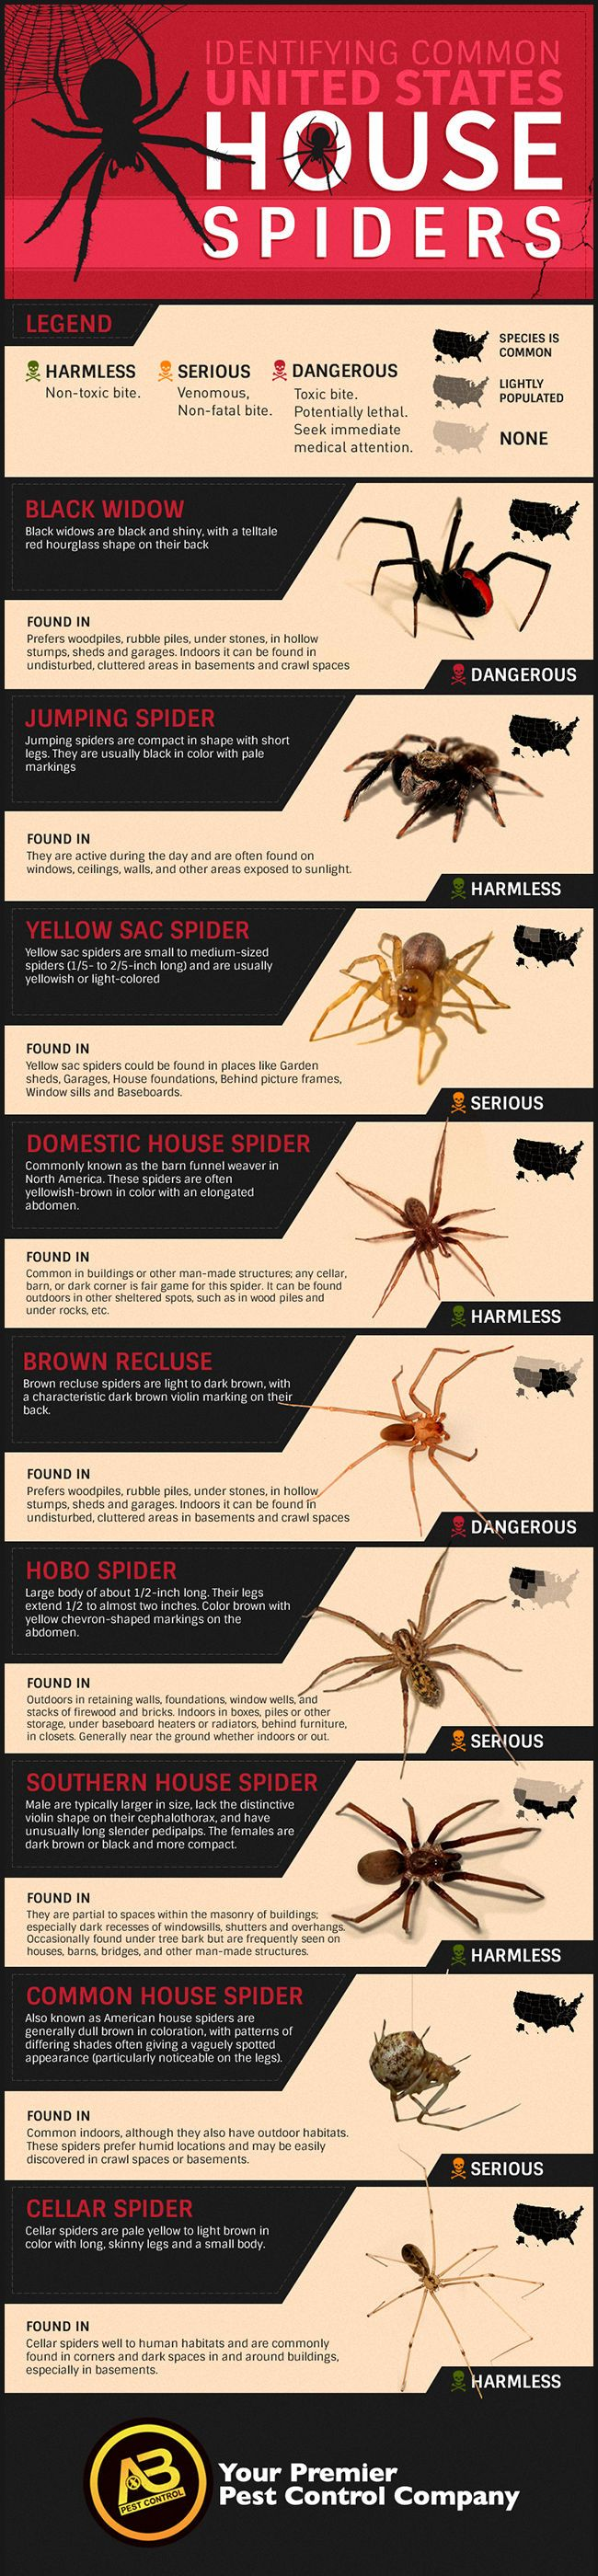 Identifying Common U.S. House Spiders - AB Pest Control. Which spiders are poisonous, and what to do about it.